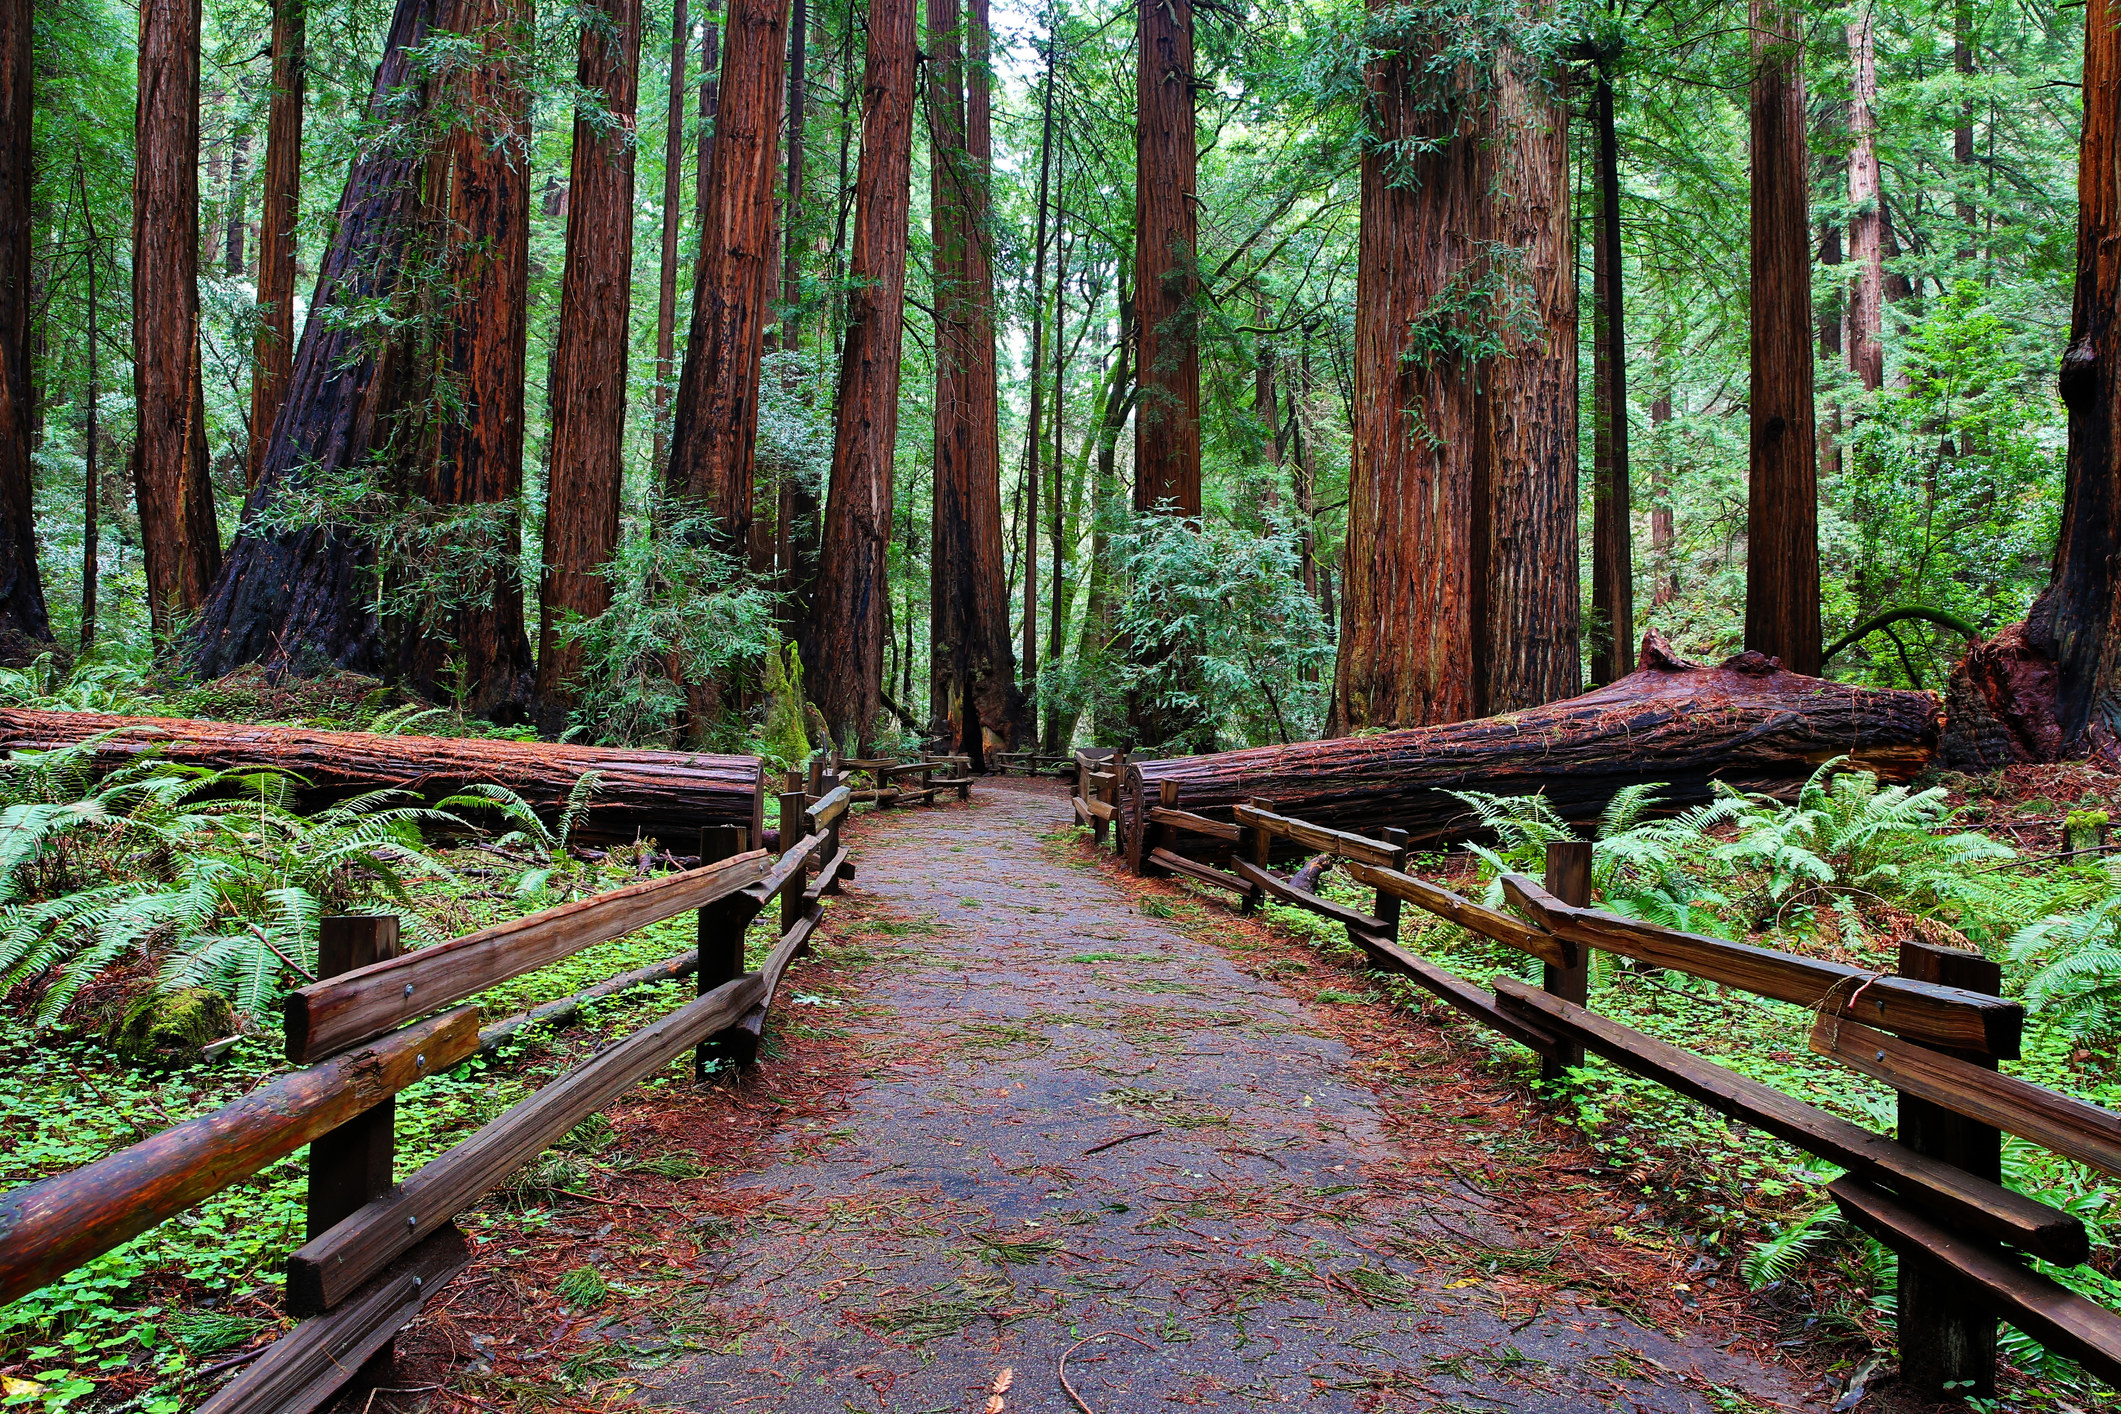 A walkway surrounded by towering redwood trees.